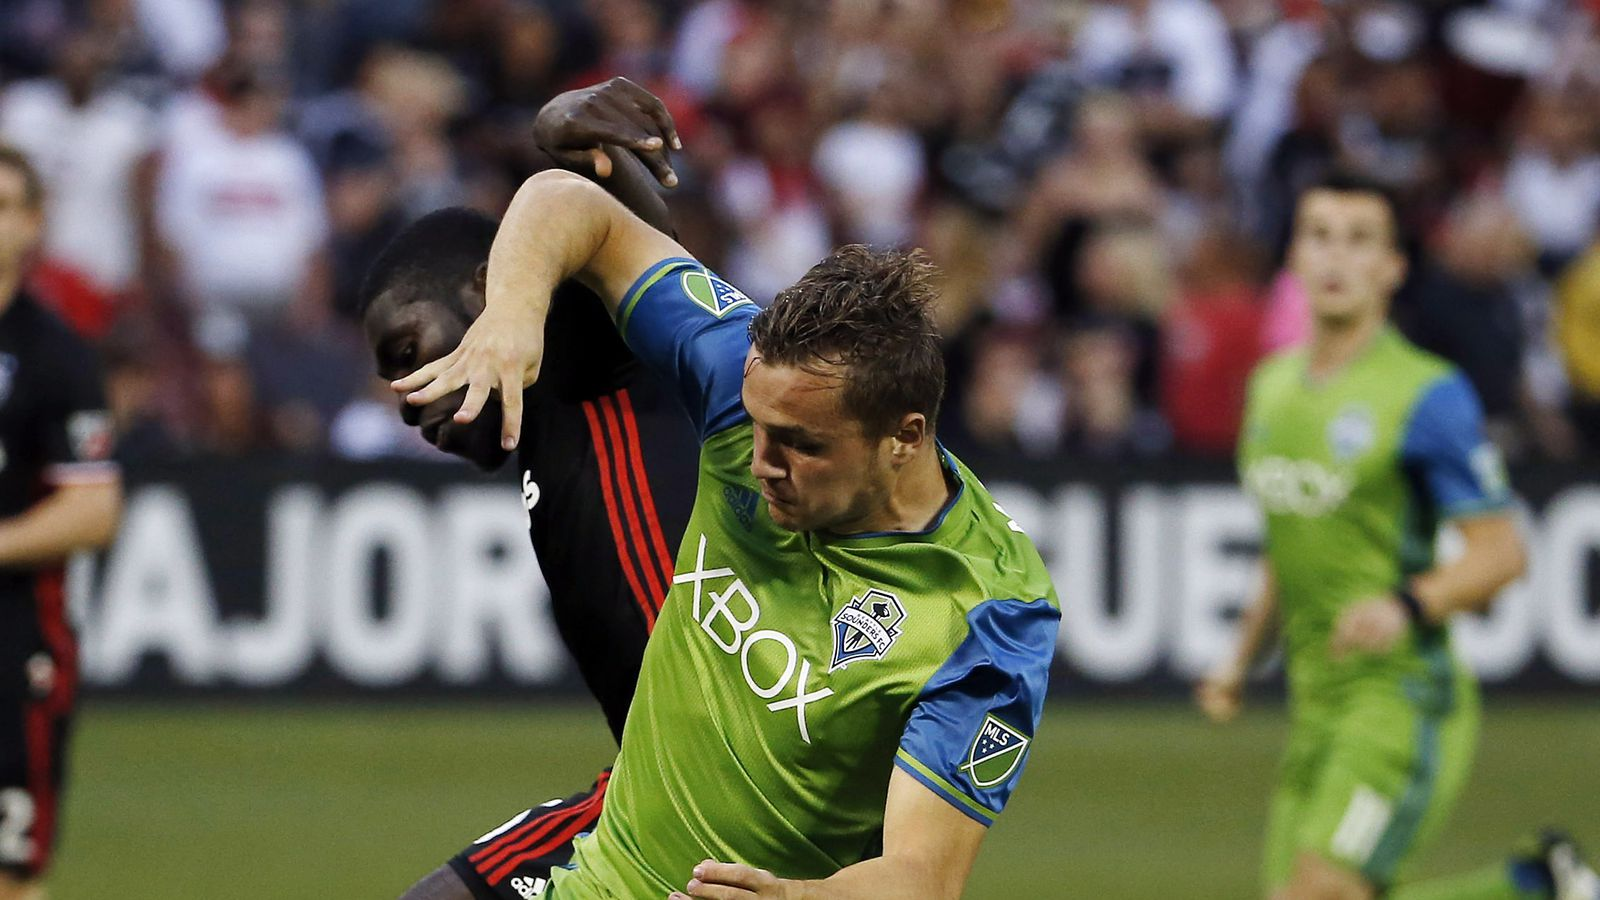 Sounders at D.C. United 2016, recap: Seattle enters break on a win